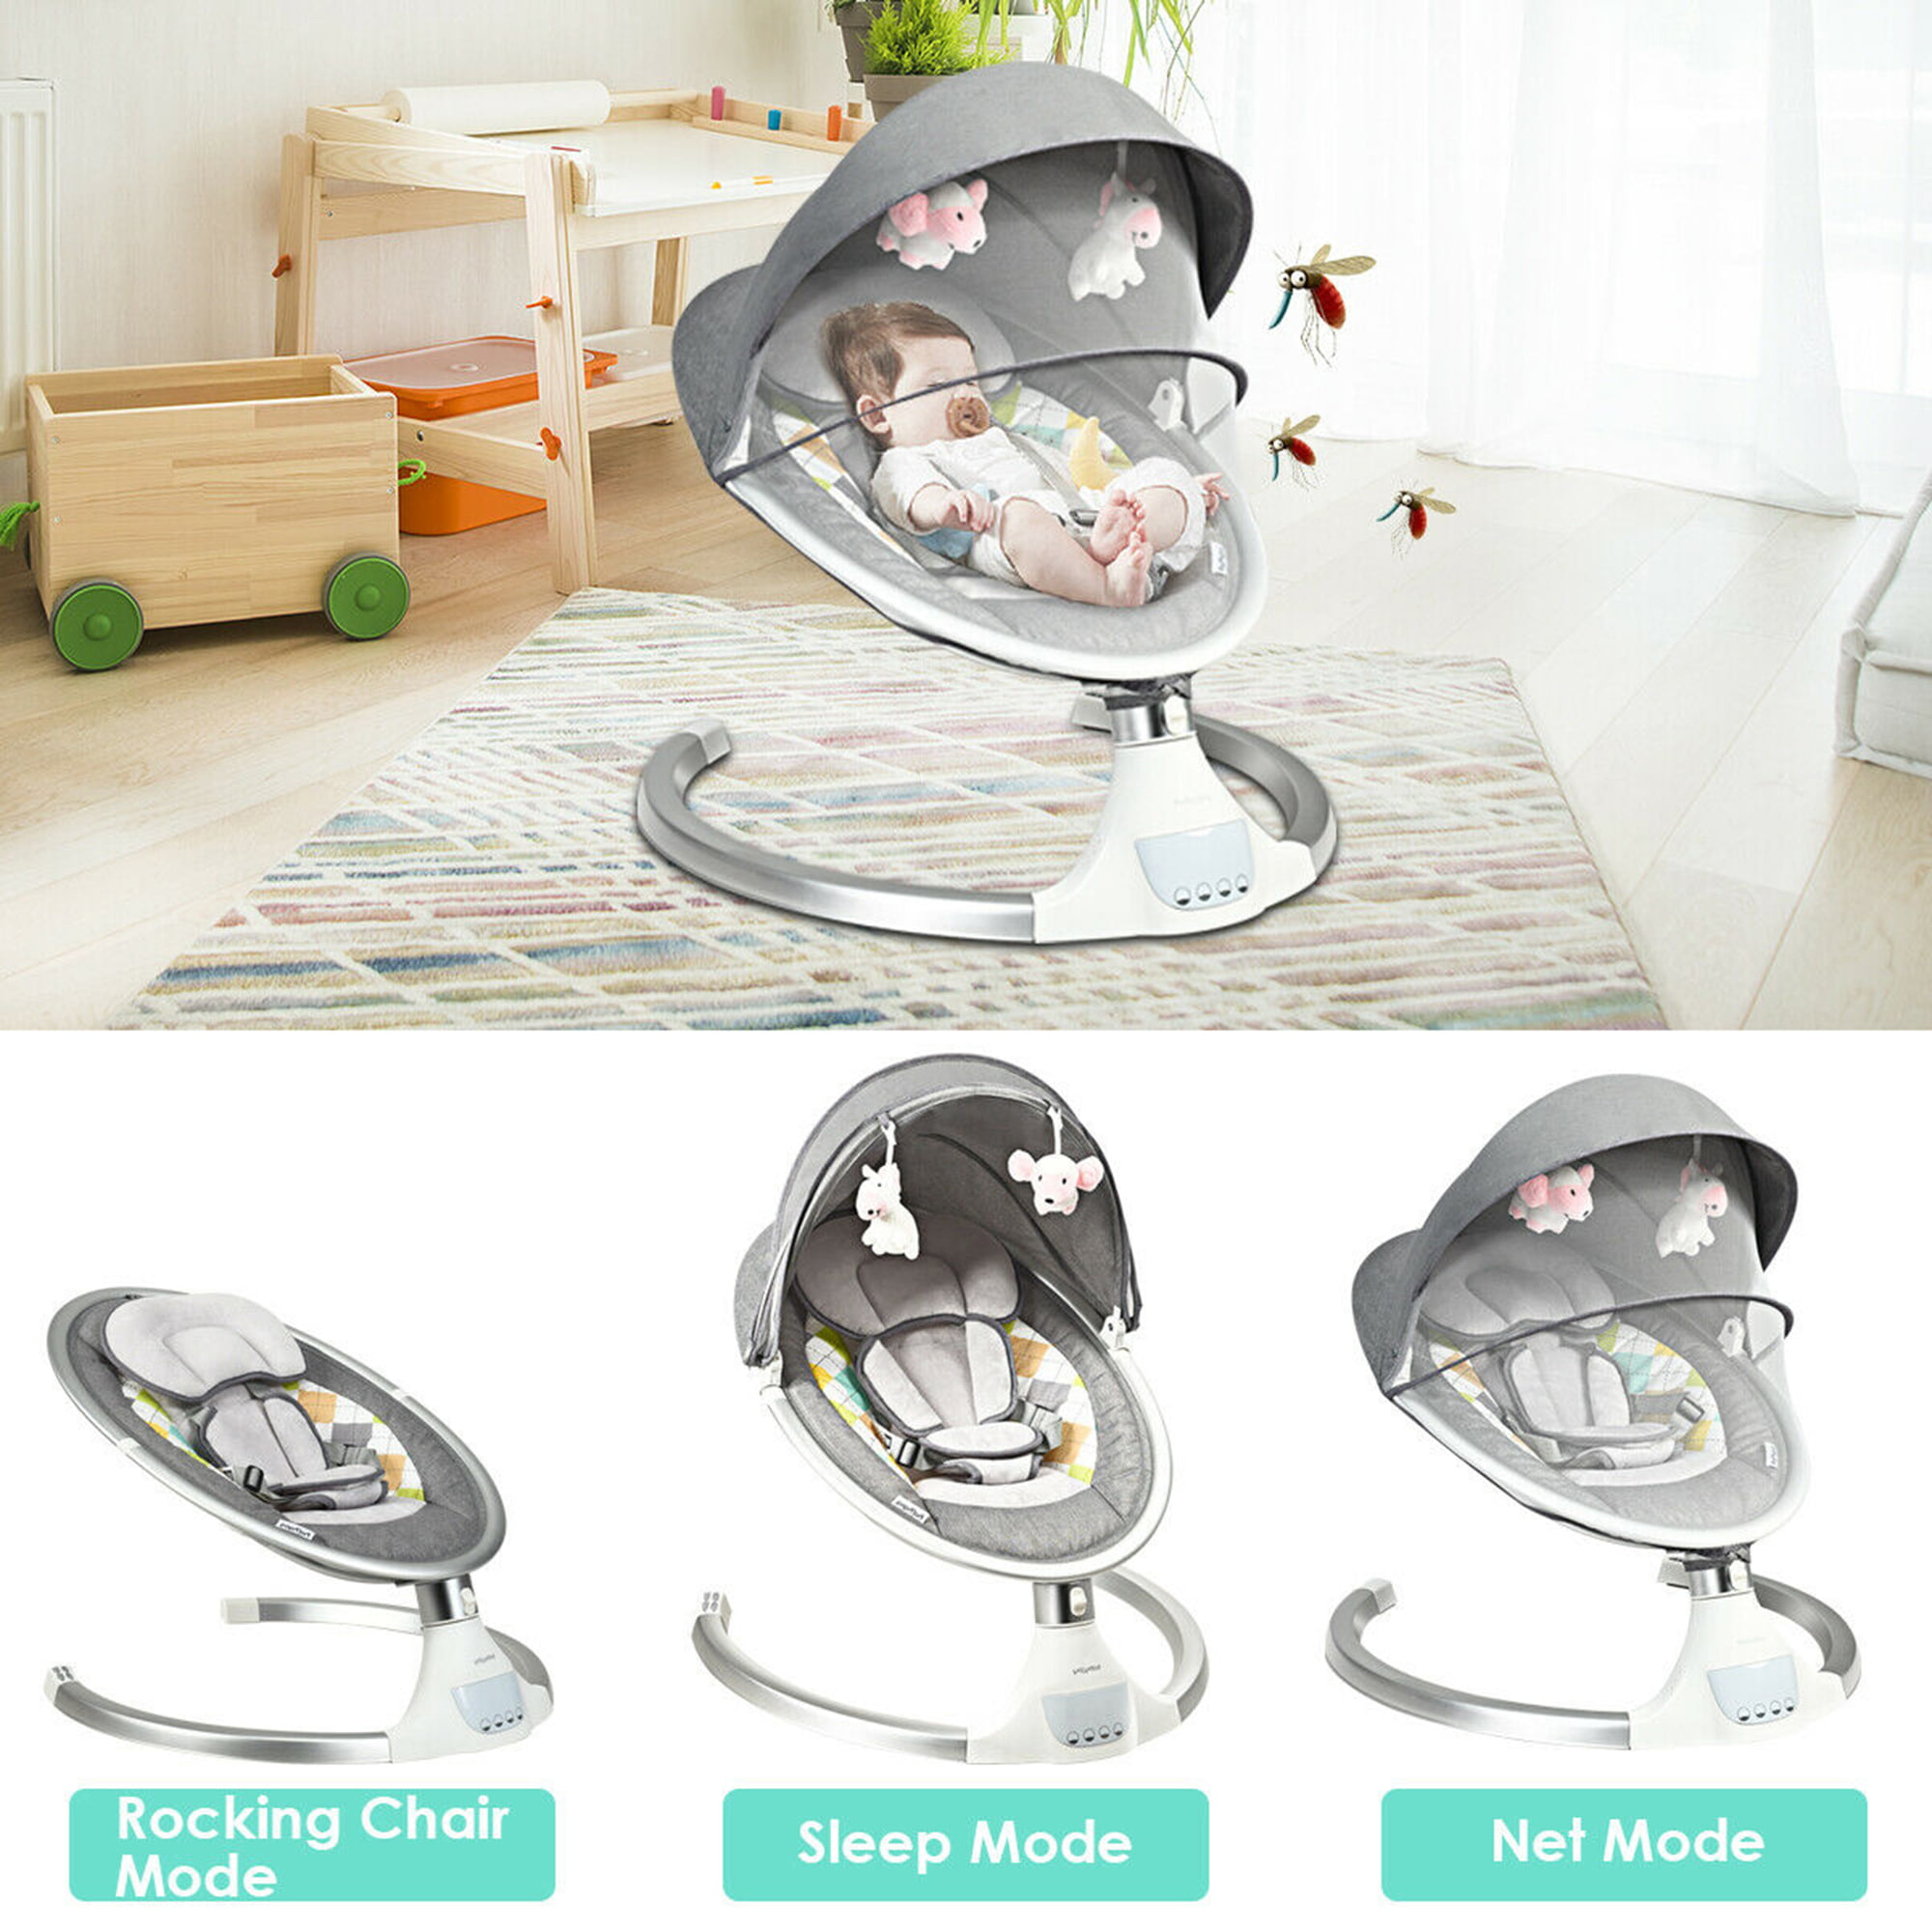 Bluetooth USB Music Play 10 Soft Melodies and Timing Function Mosquito Net GYMAX Electric Baby Rocker with 5 Swinging Amplitudes Electrical Baby Swing Infant Bouncer